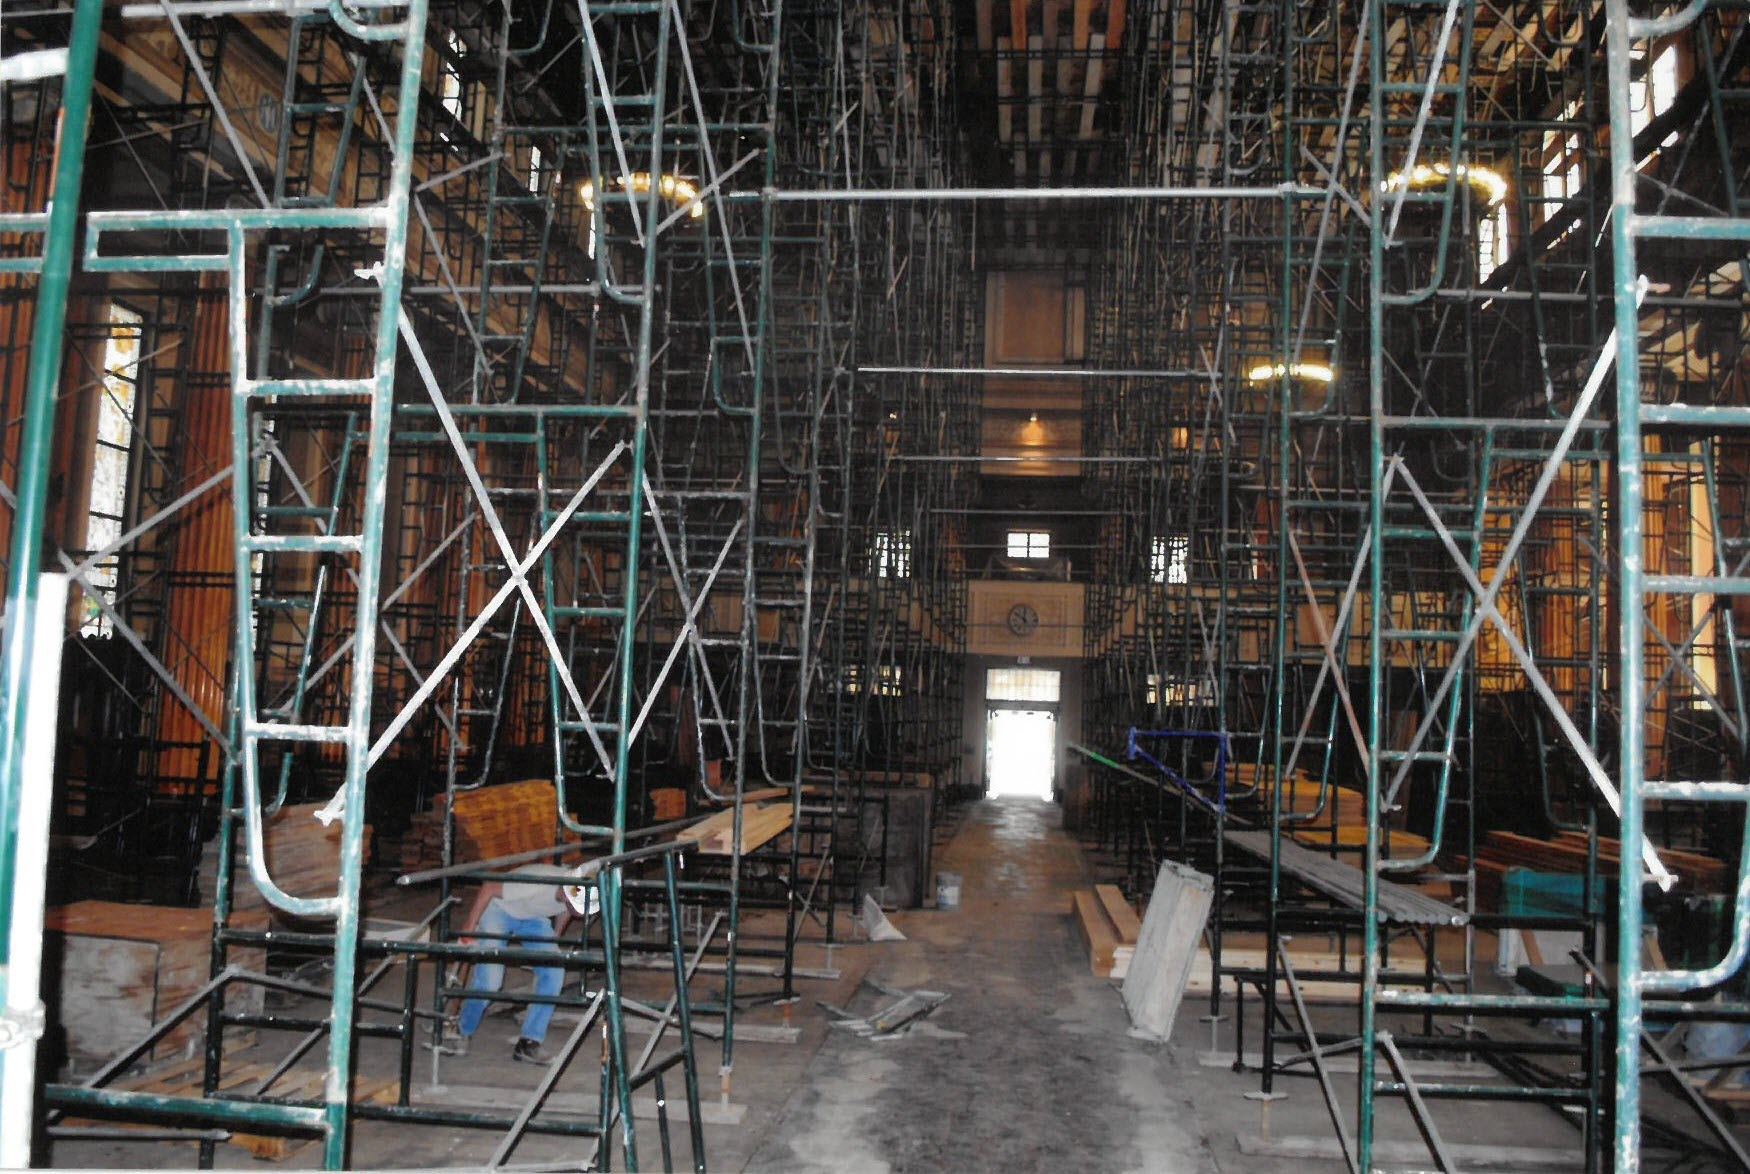 Scaffolding Inside the Cathedral During the Renovation in 2008-2009. Photo Courtesy of the Diocese of Springfield in Illinois Office for Archives and Records Management